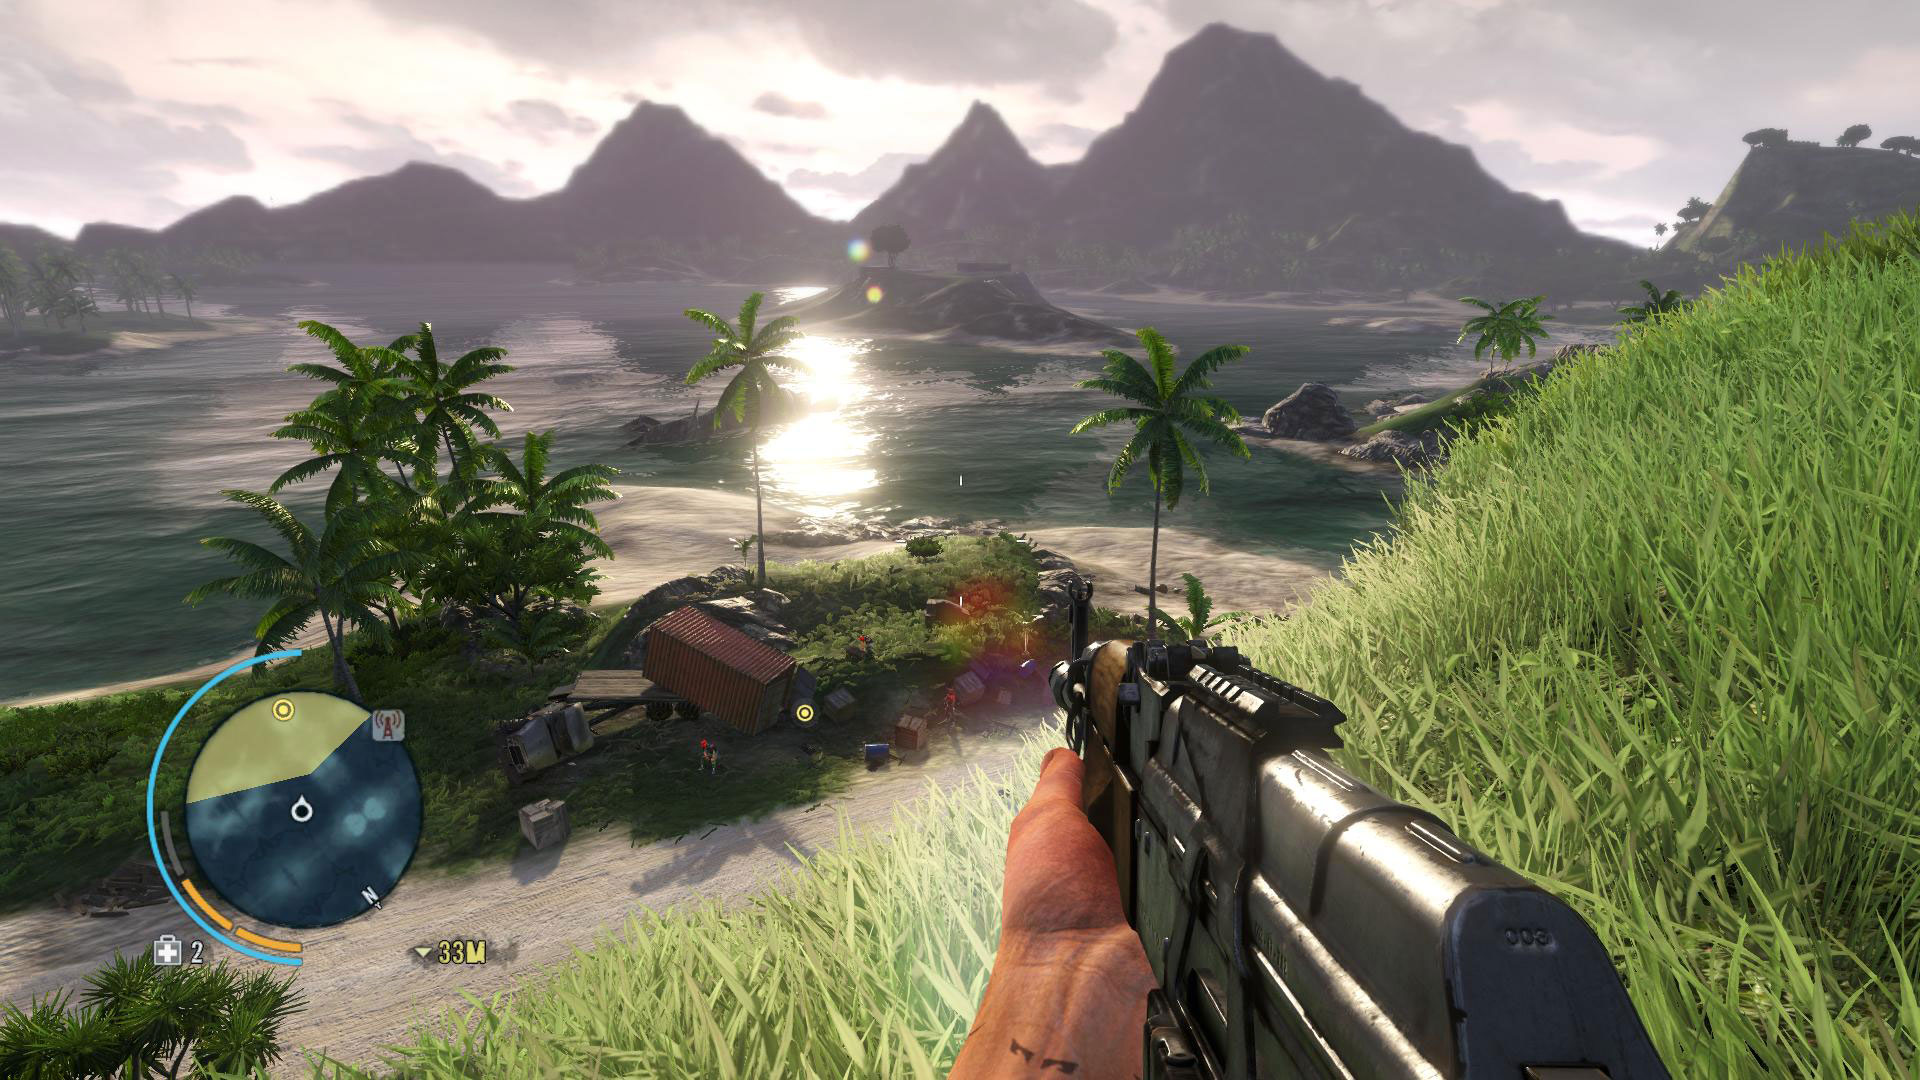 Far Cry 3 Wallpapers Video Game Hq Far Cry 3 Pictures 4k Wallpapers 2019